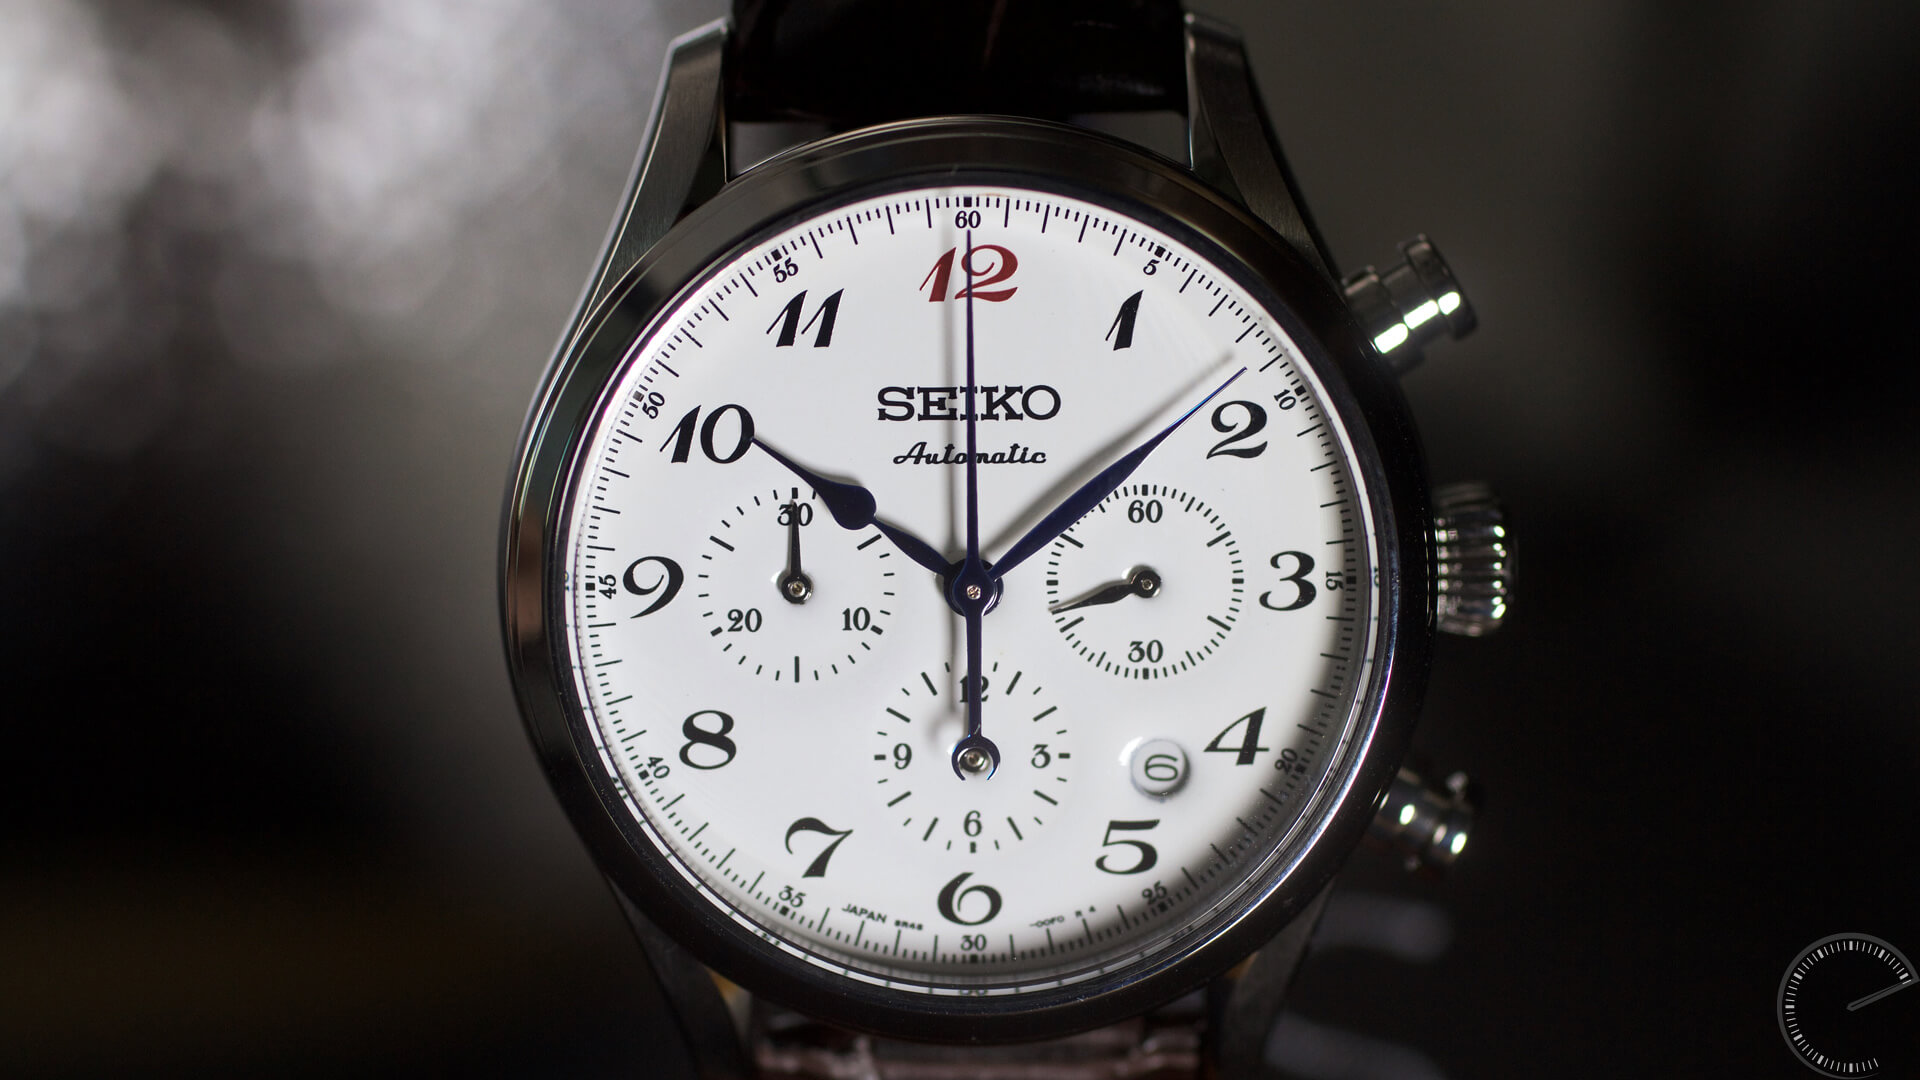 Seiko_Presage_60th_Anniversary_Chronograph_SRQ019_white_enamel_dial - ESCAPEMENT magazine - watch review website by Angus Davies